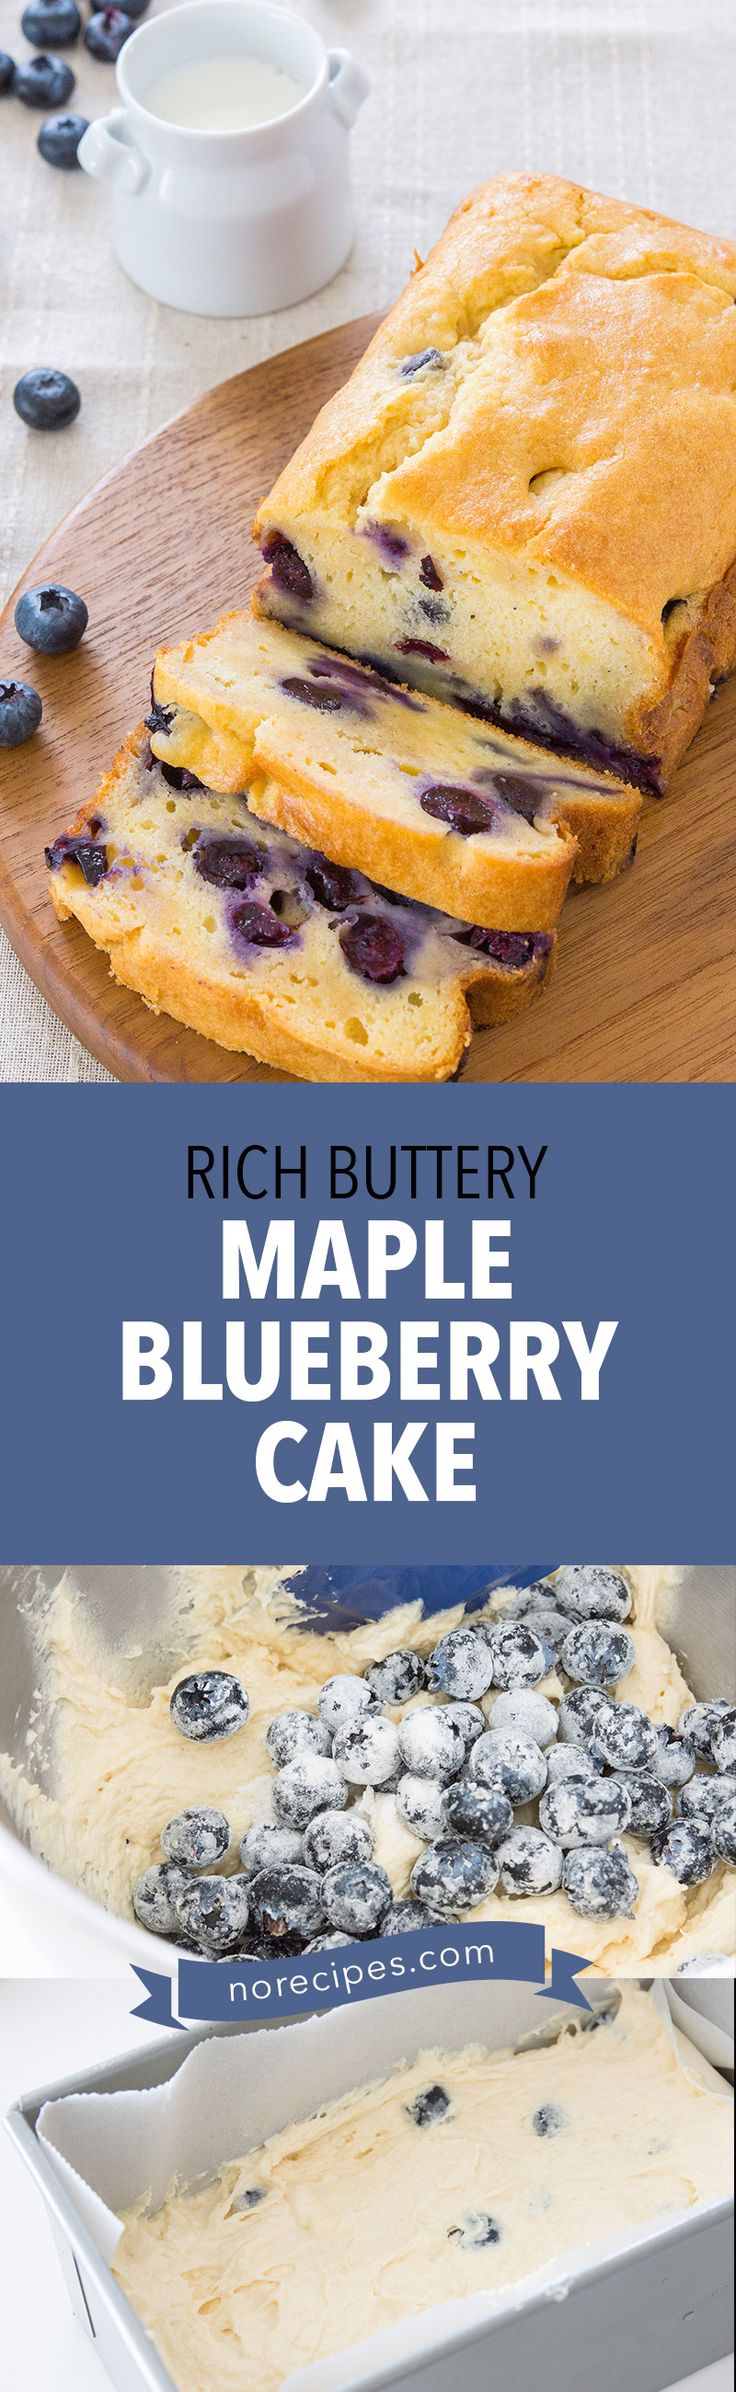 Recipe for a rich buttery pound cake studded with fresh blueberries and a maple syrup glaze.